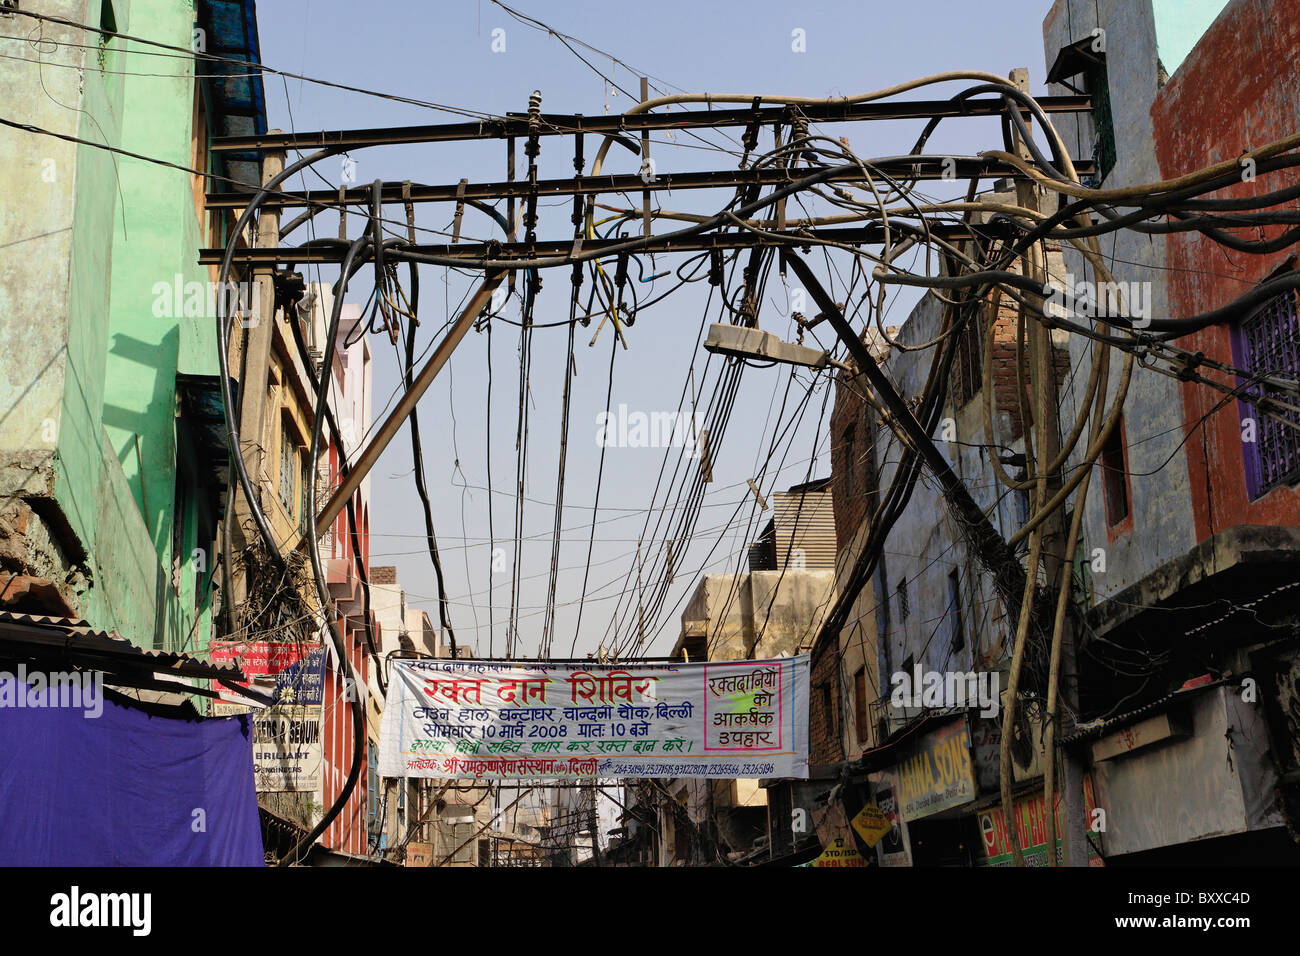 India Electricity Electrical Unsafe Stockfotos & India Electricity ...